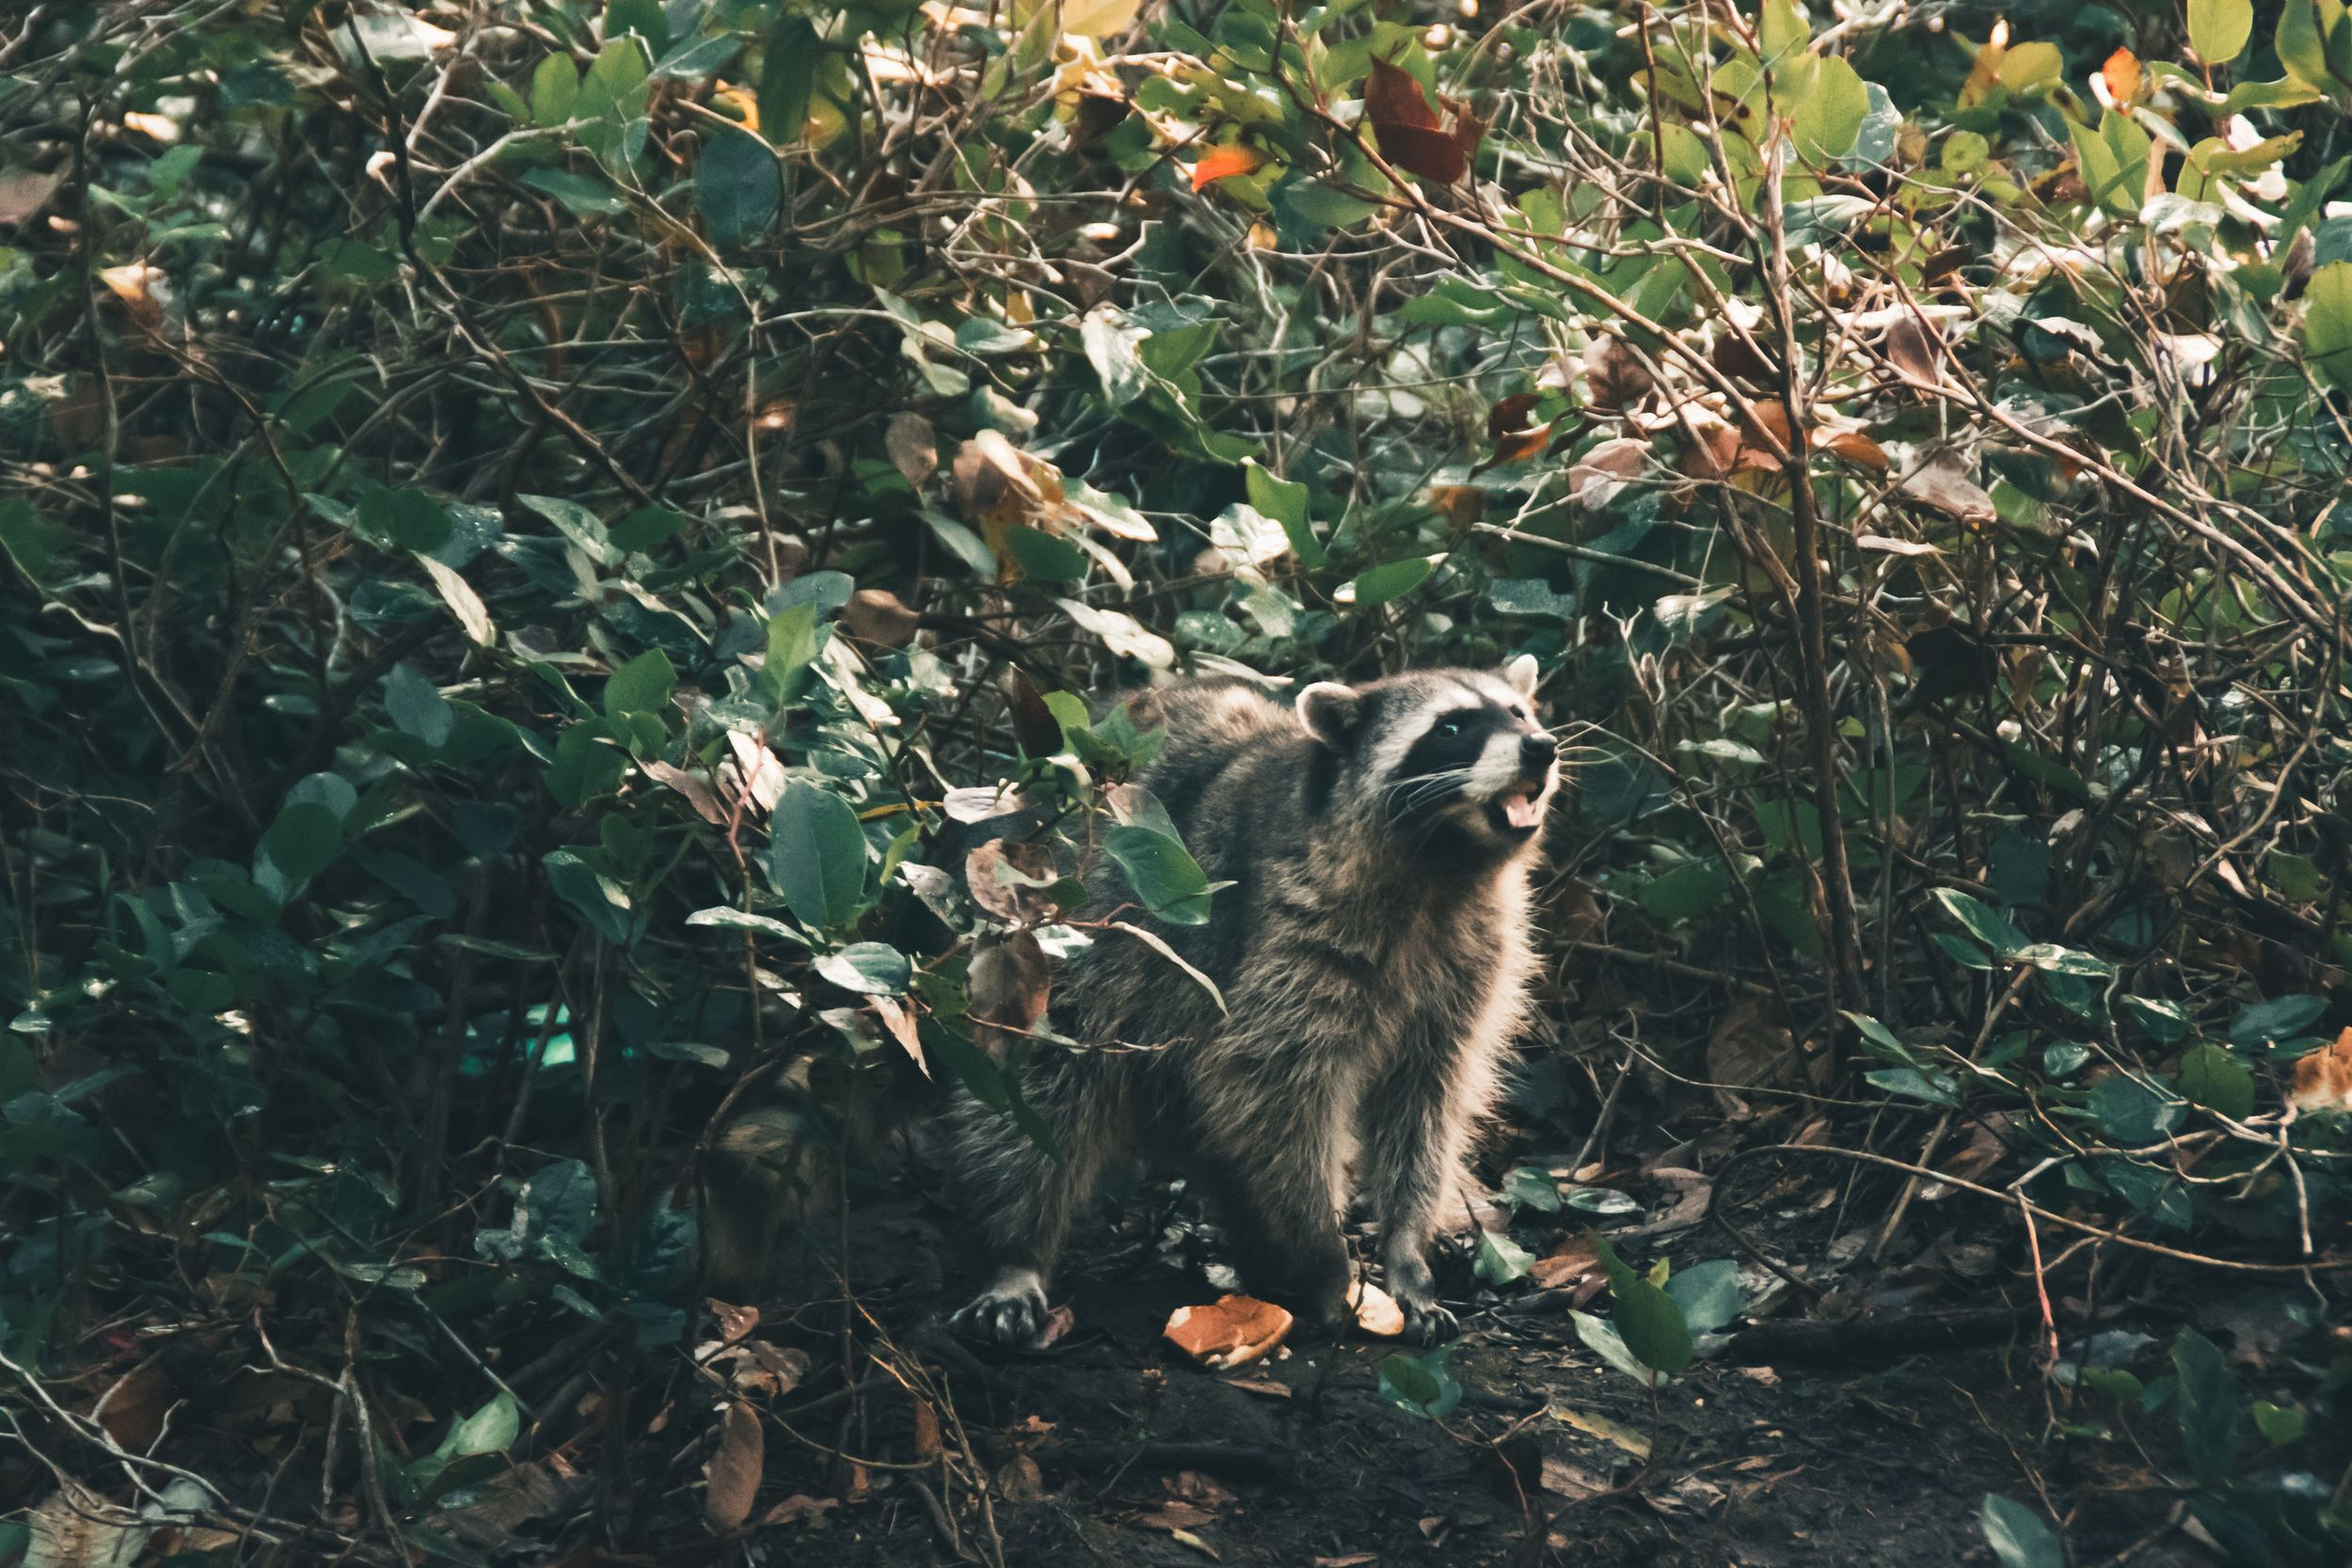 Raccoon in bushes